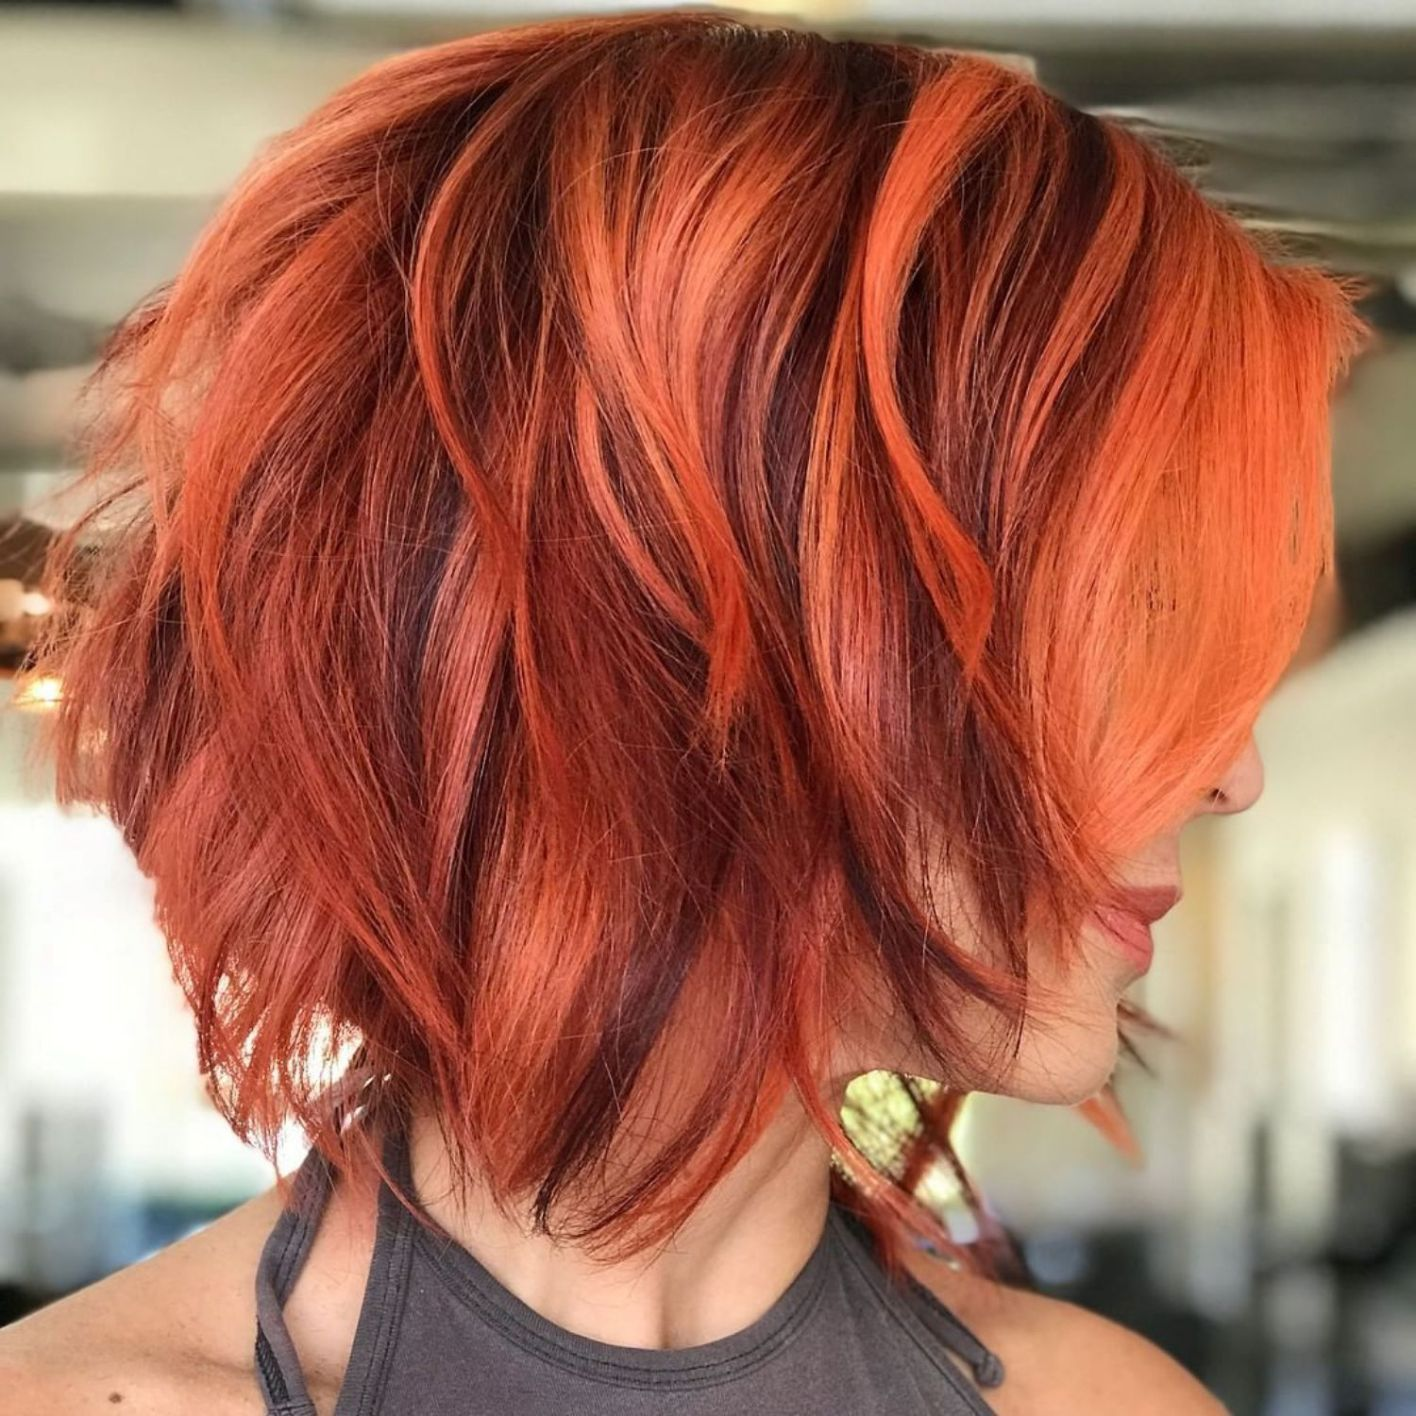 100 Mind Blowing Short Hairstyles For Fine Hair Short Red Hair Cute Hairstyles For Short Hair Hair Styles